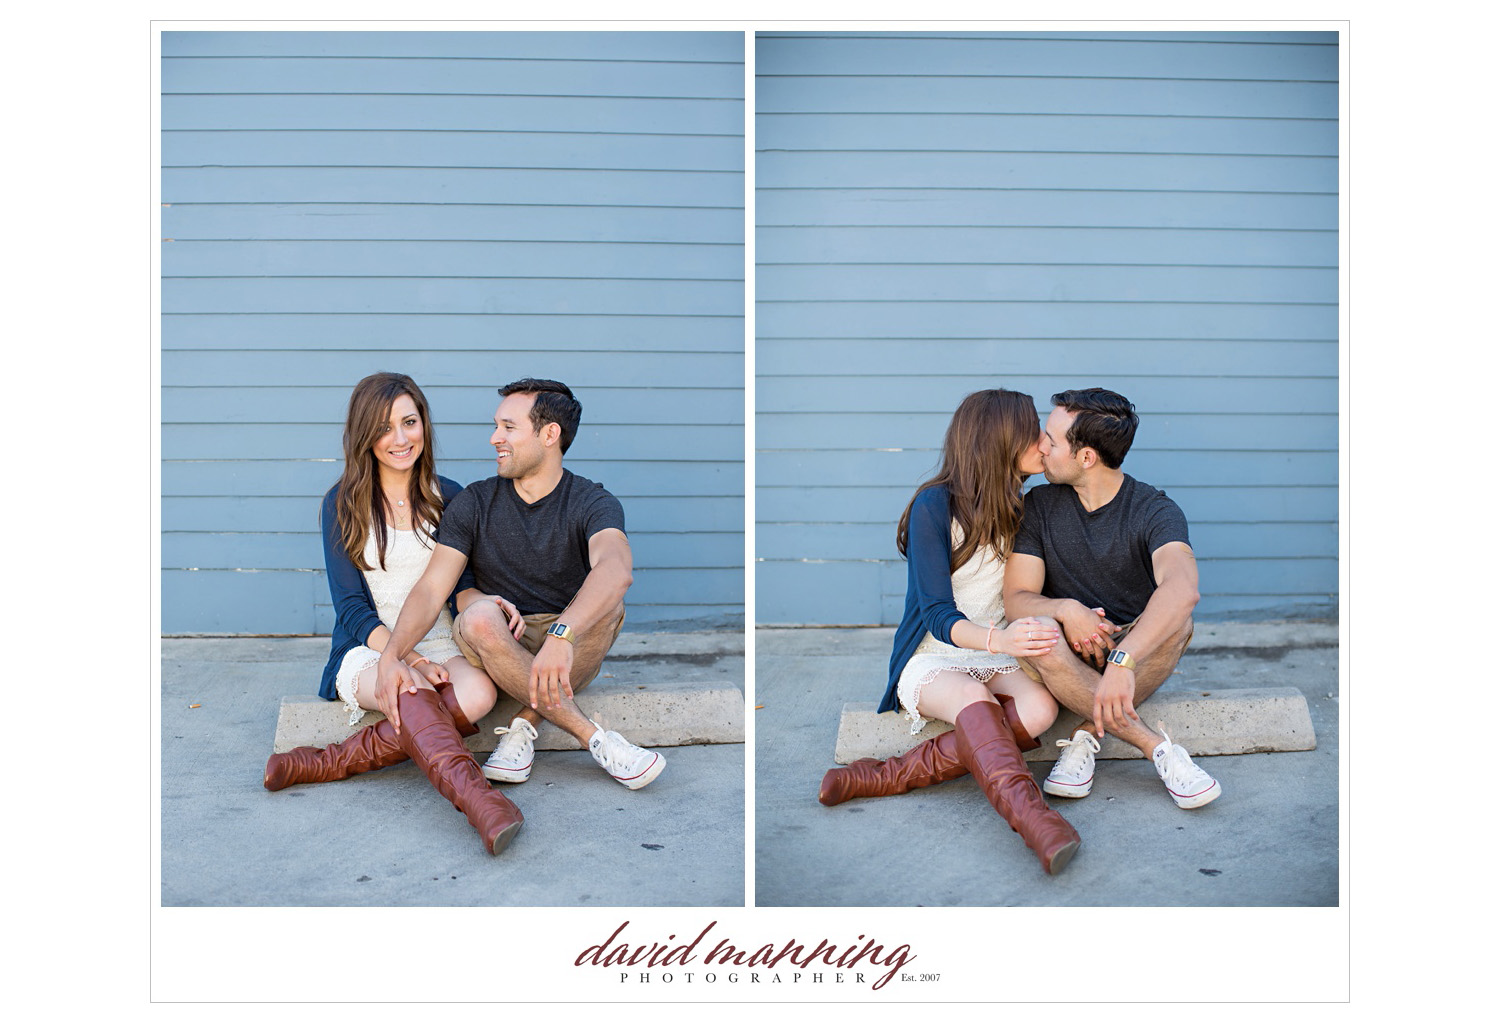 Encinitas-Engagement-Photos-San-Diego-David-Manning_0006.jpg